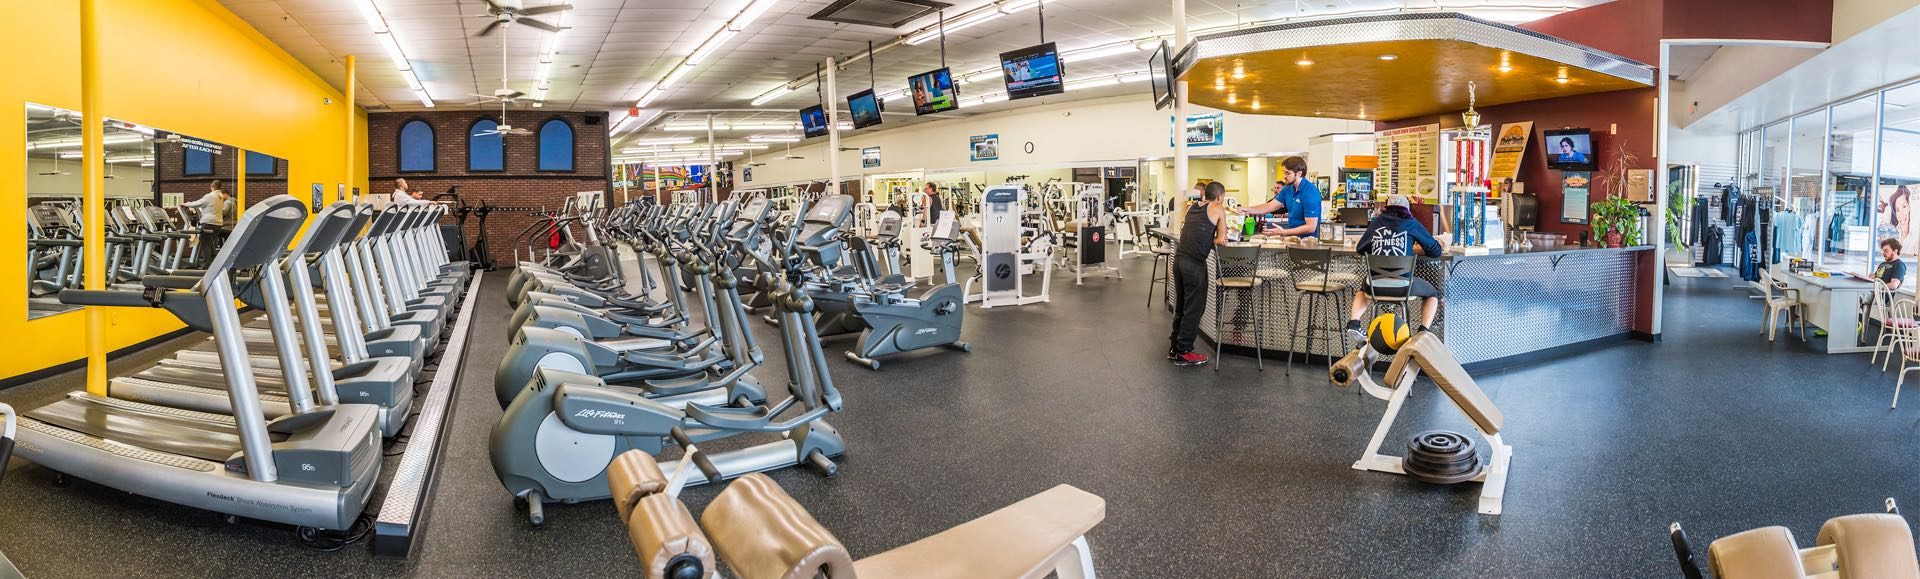 New York Fitness Clubs Equipment Cl Training